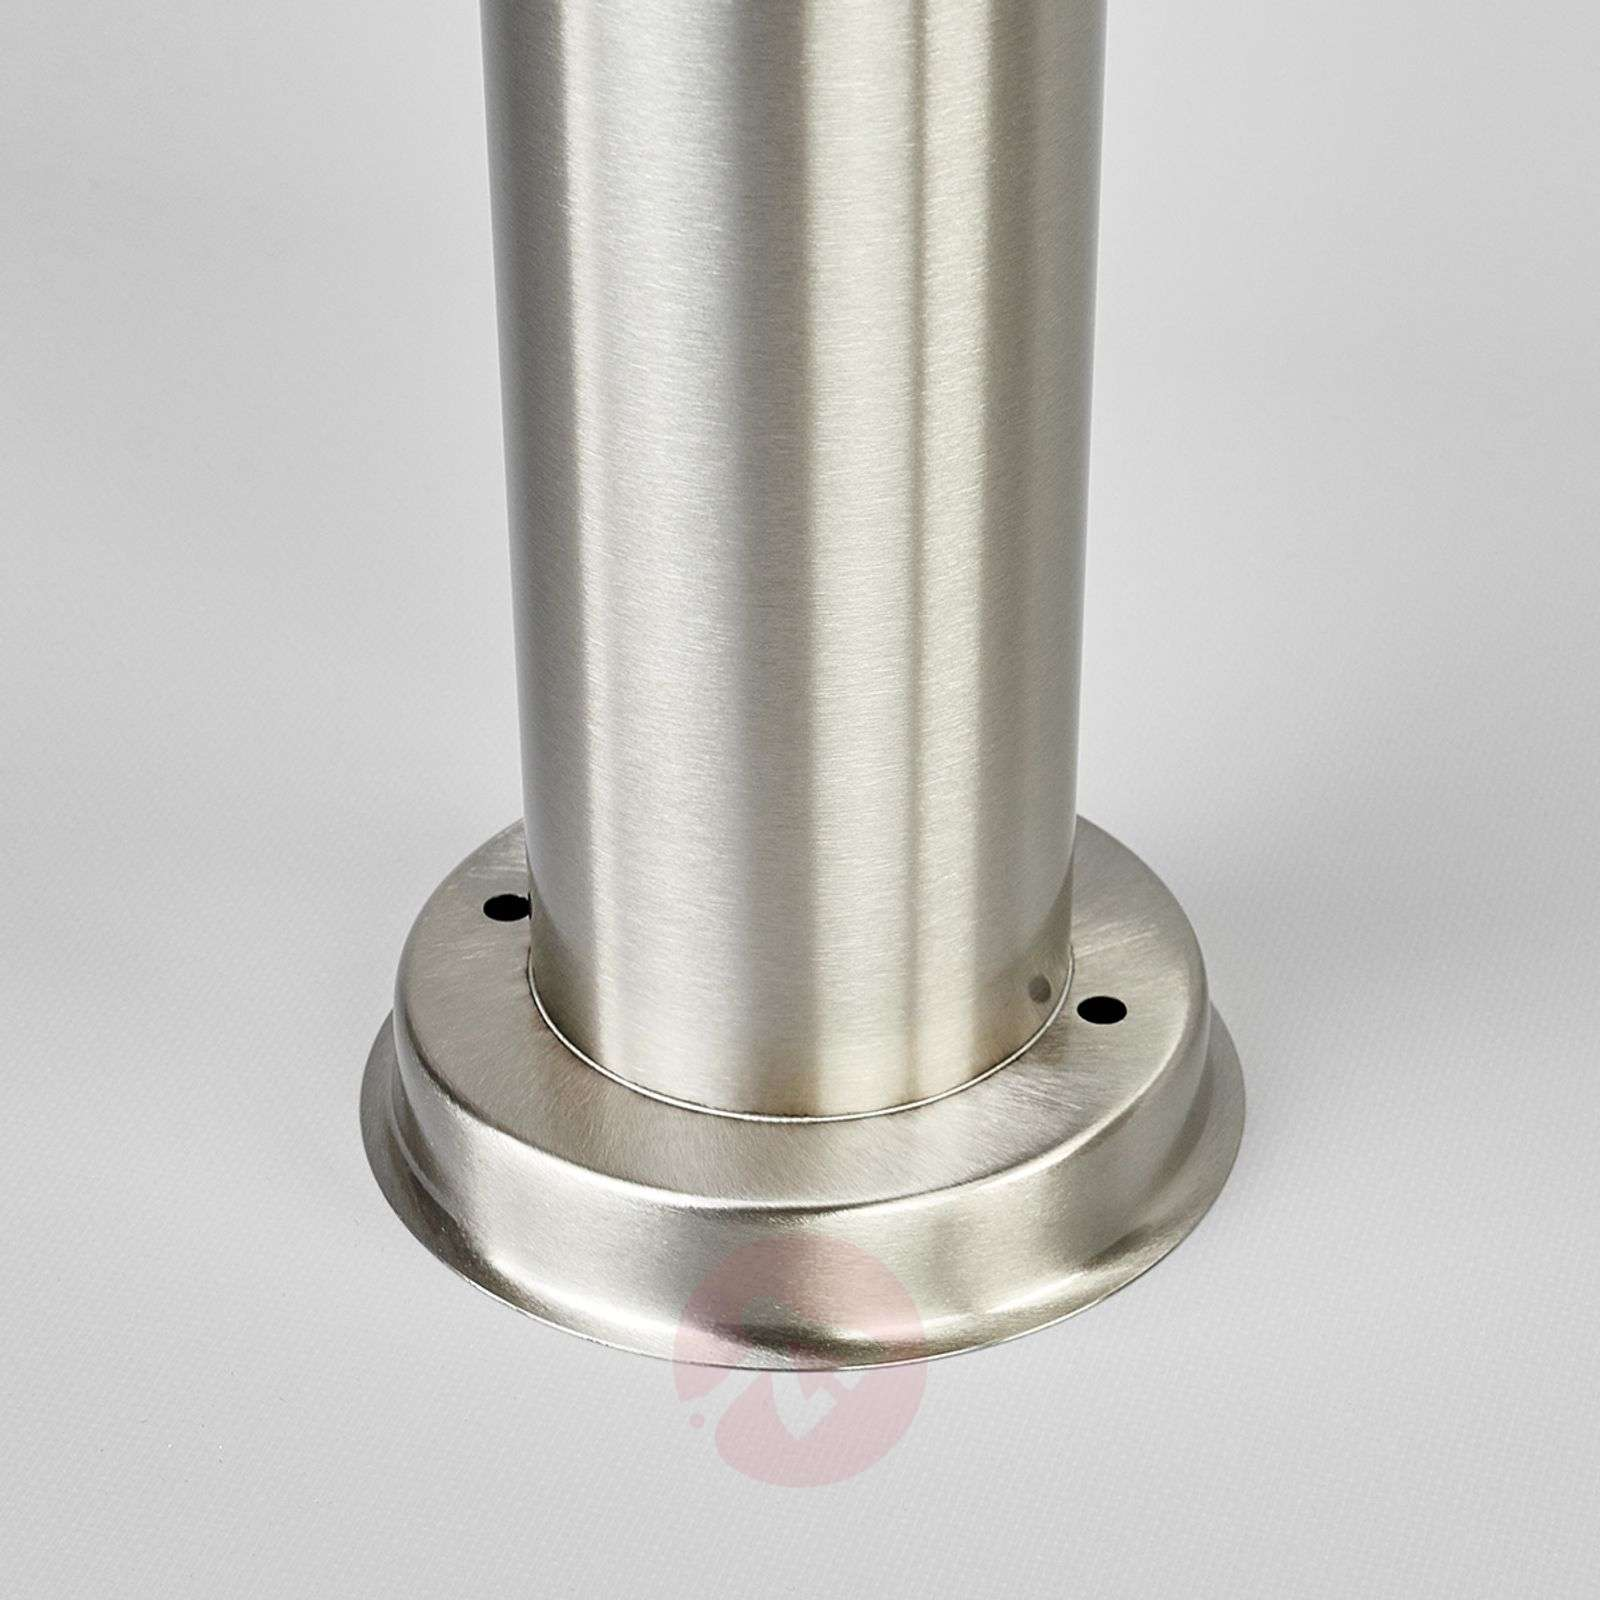 Cylindrical path lamp Kristof, stainless steel-9972057-01